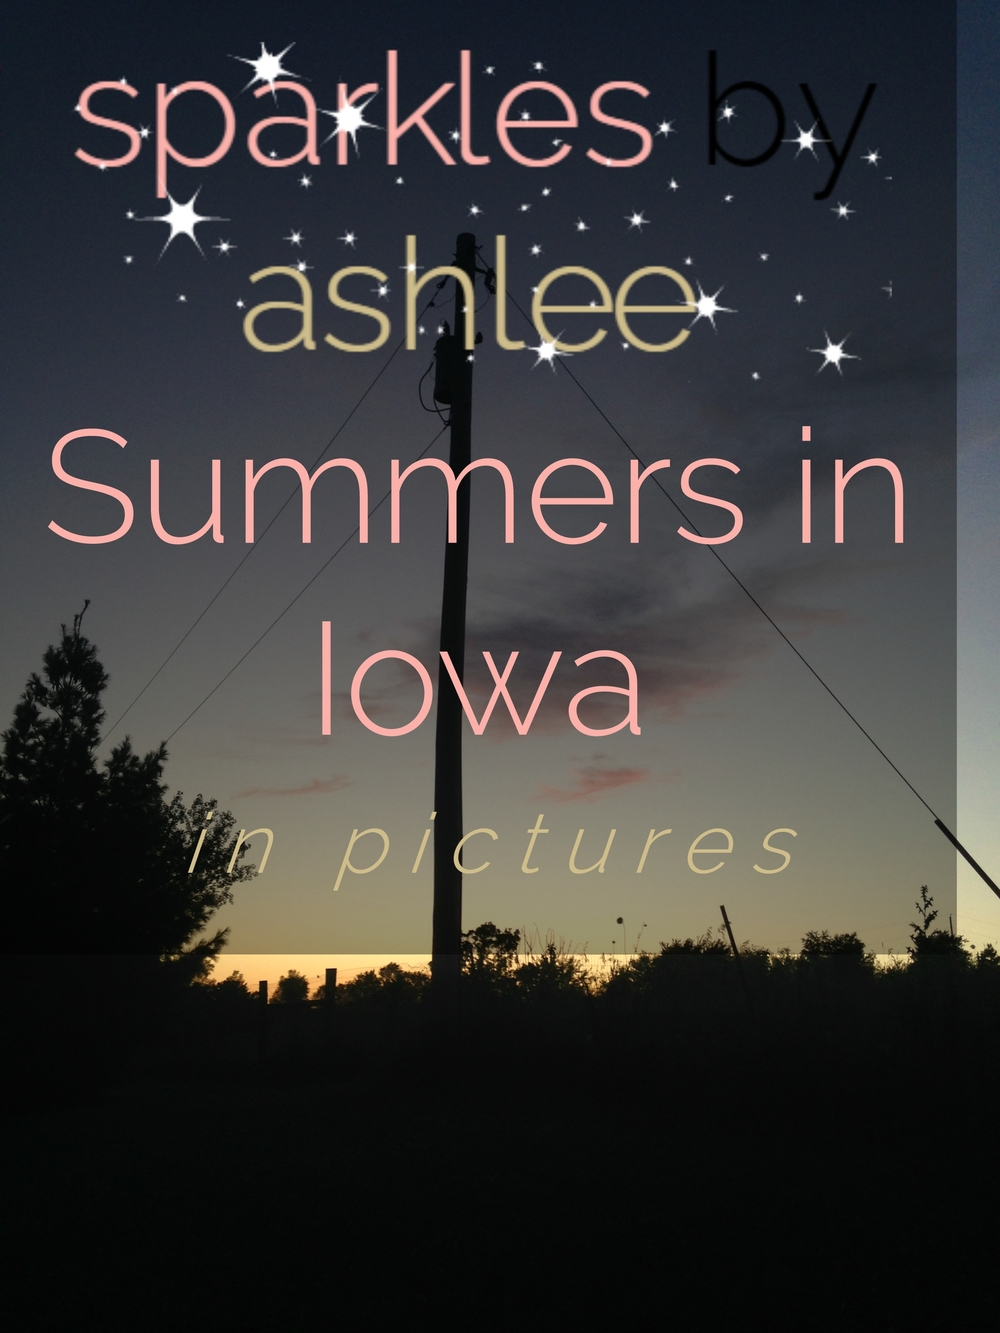 Summers-in-Iowa-Sparkles-by-Ashlee.jpg